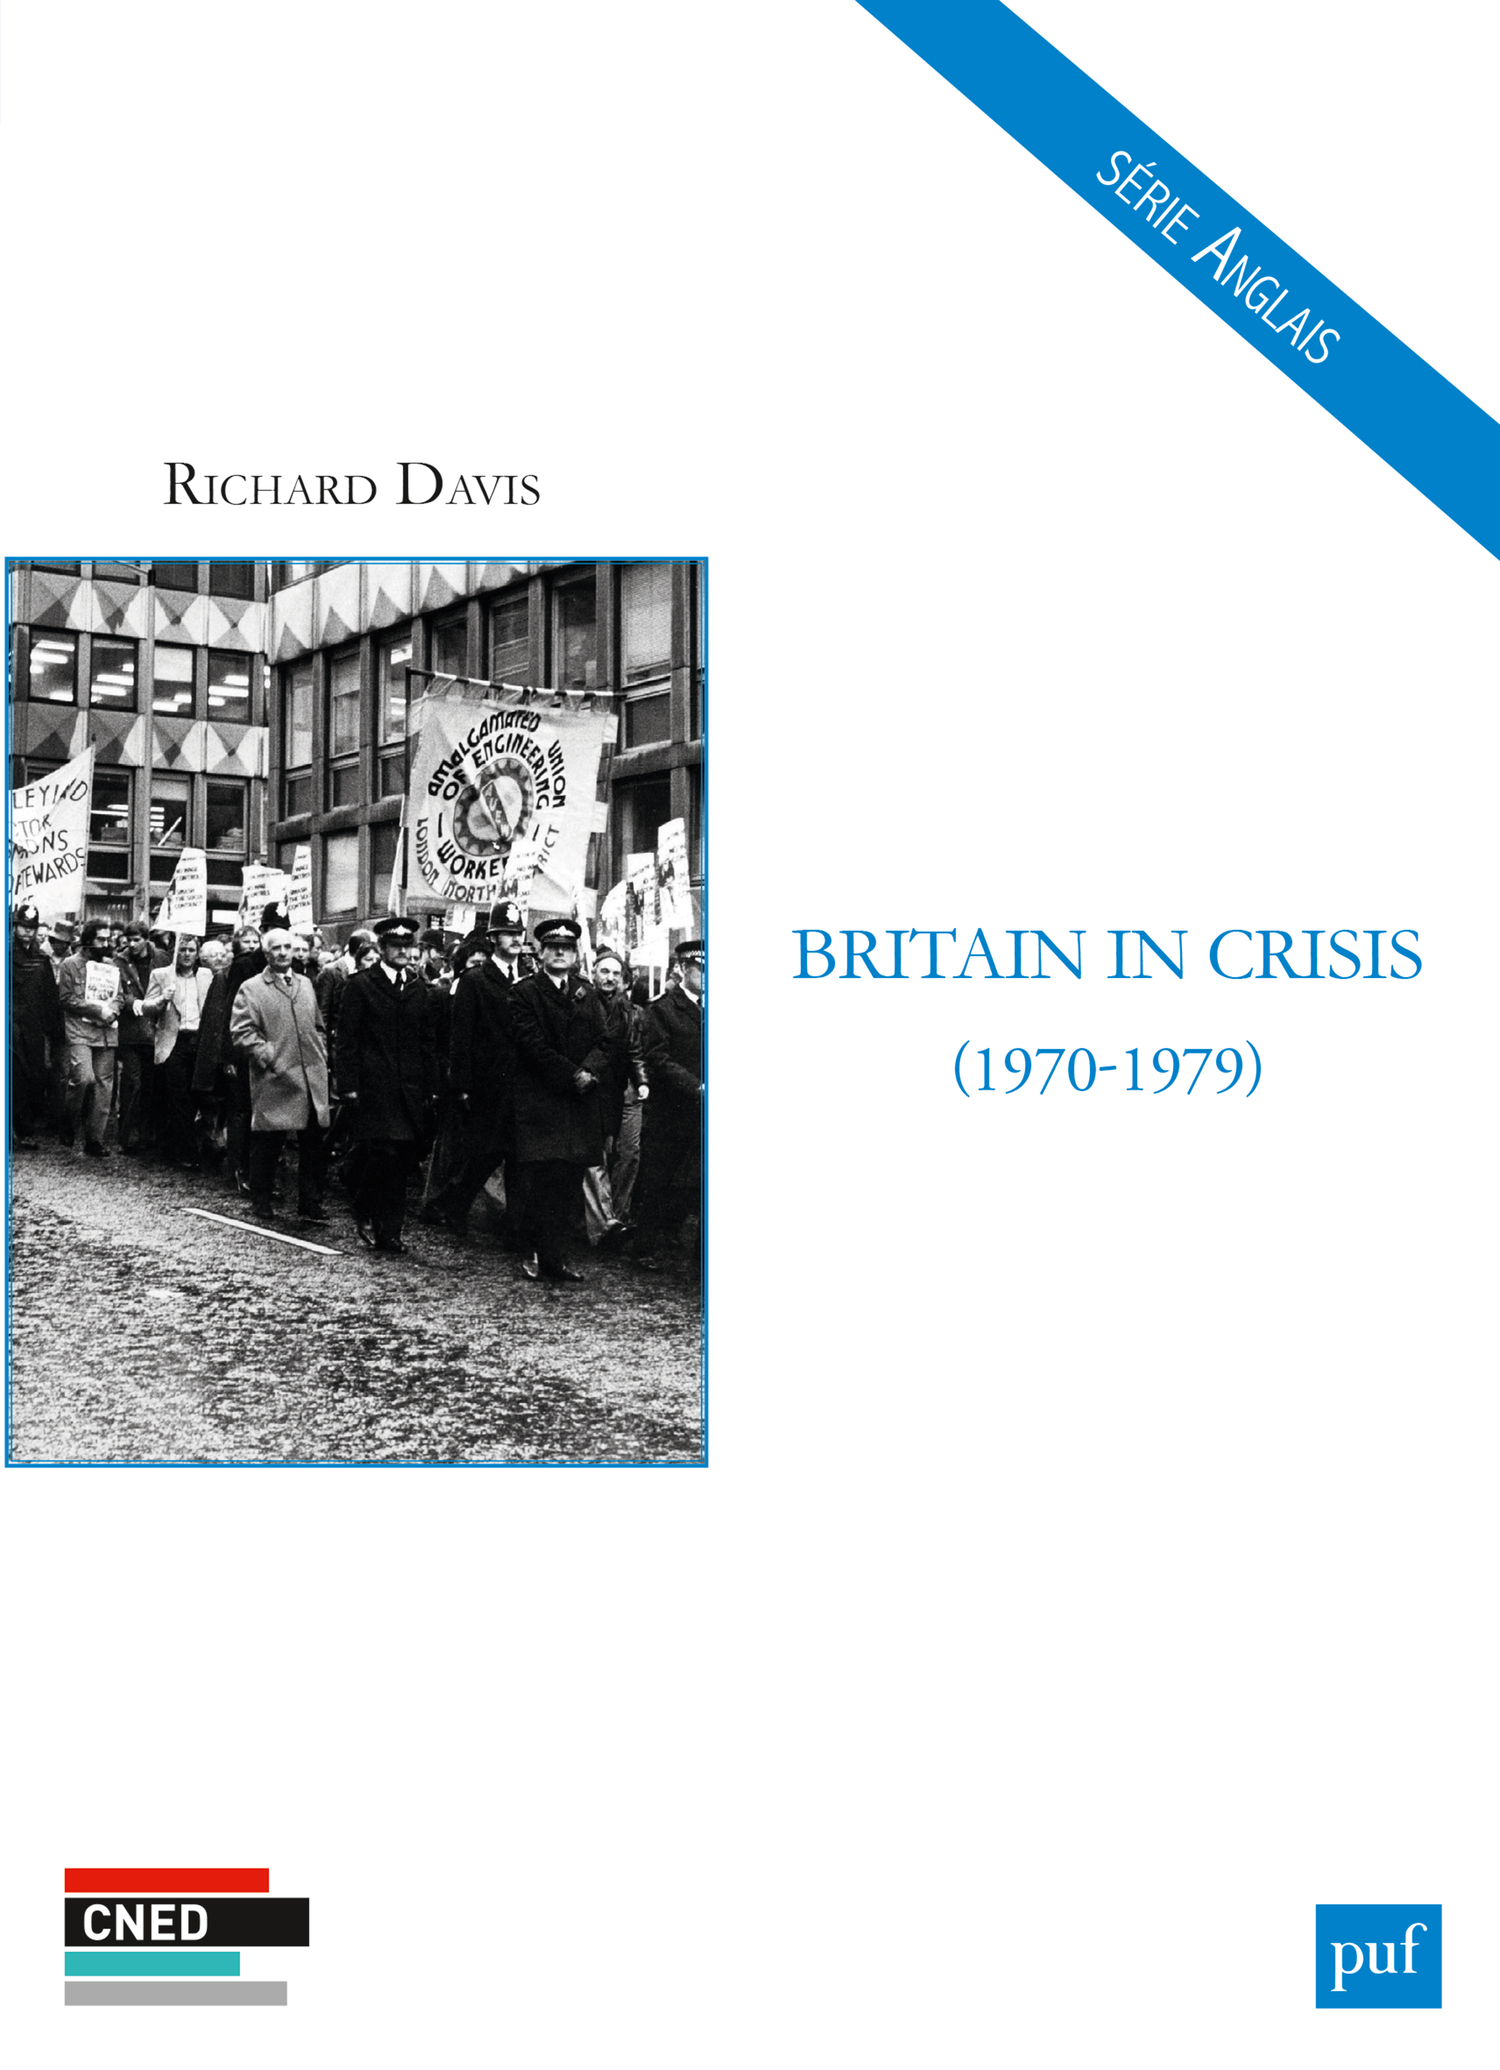 Britain in Crisis (1970-1979) De Richard Davis - Presses Universitaires de France